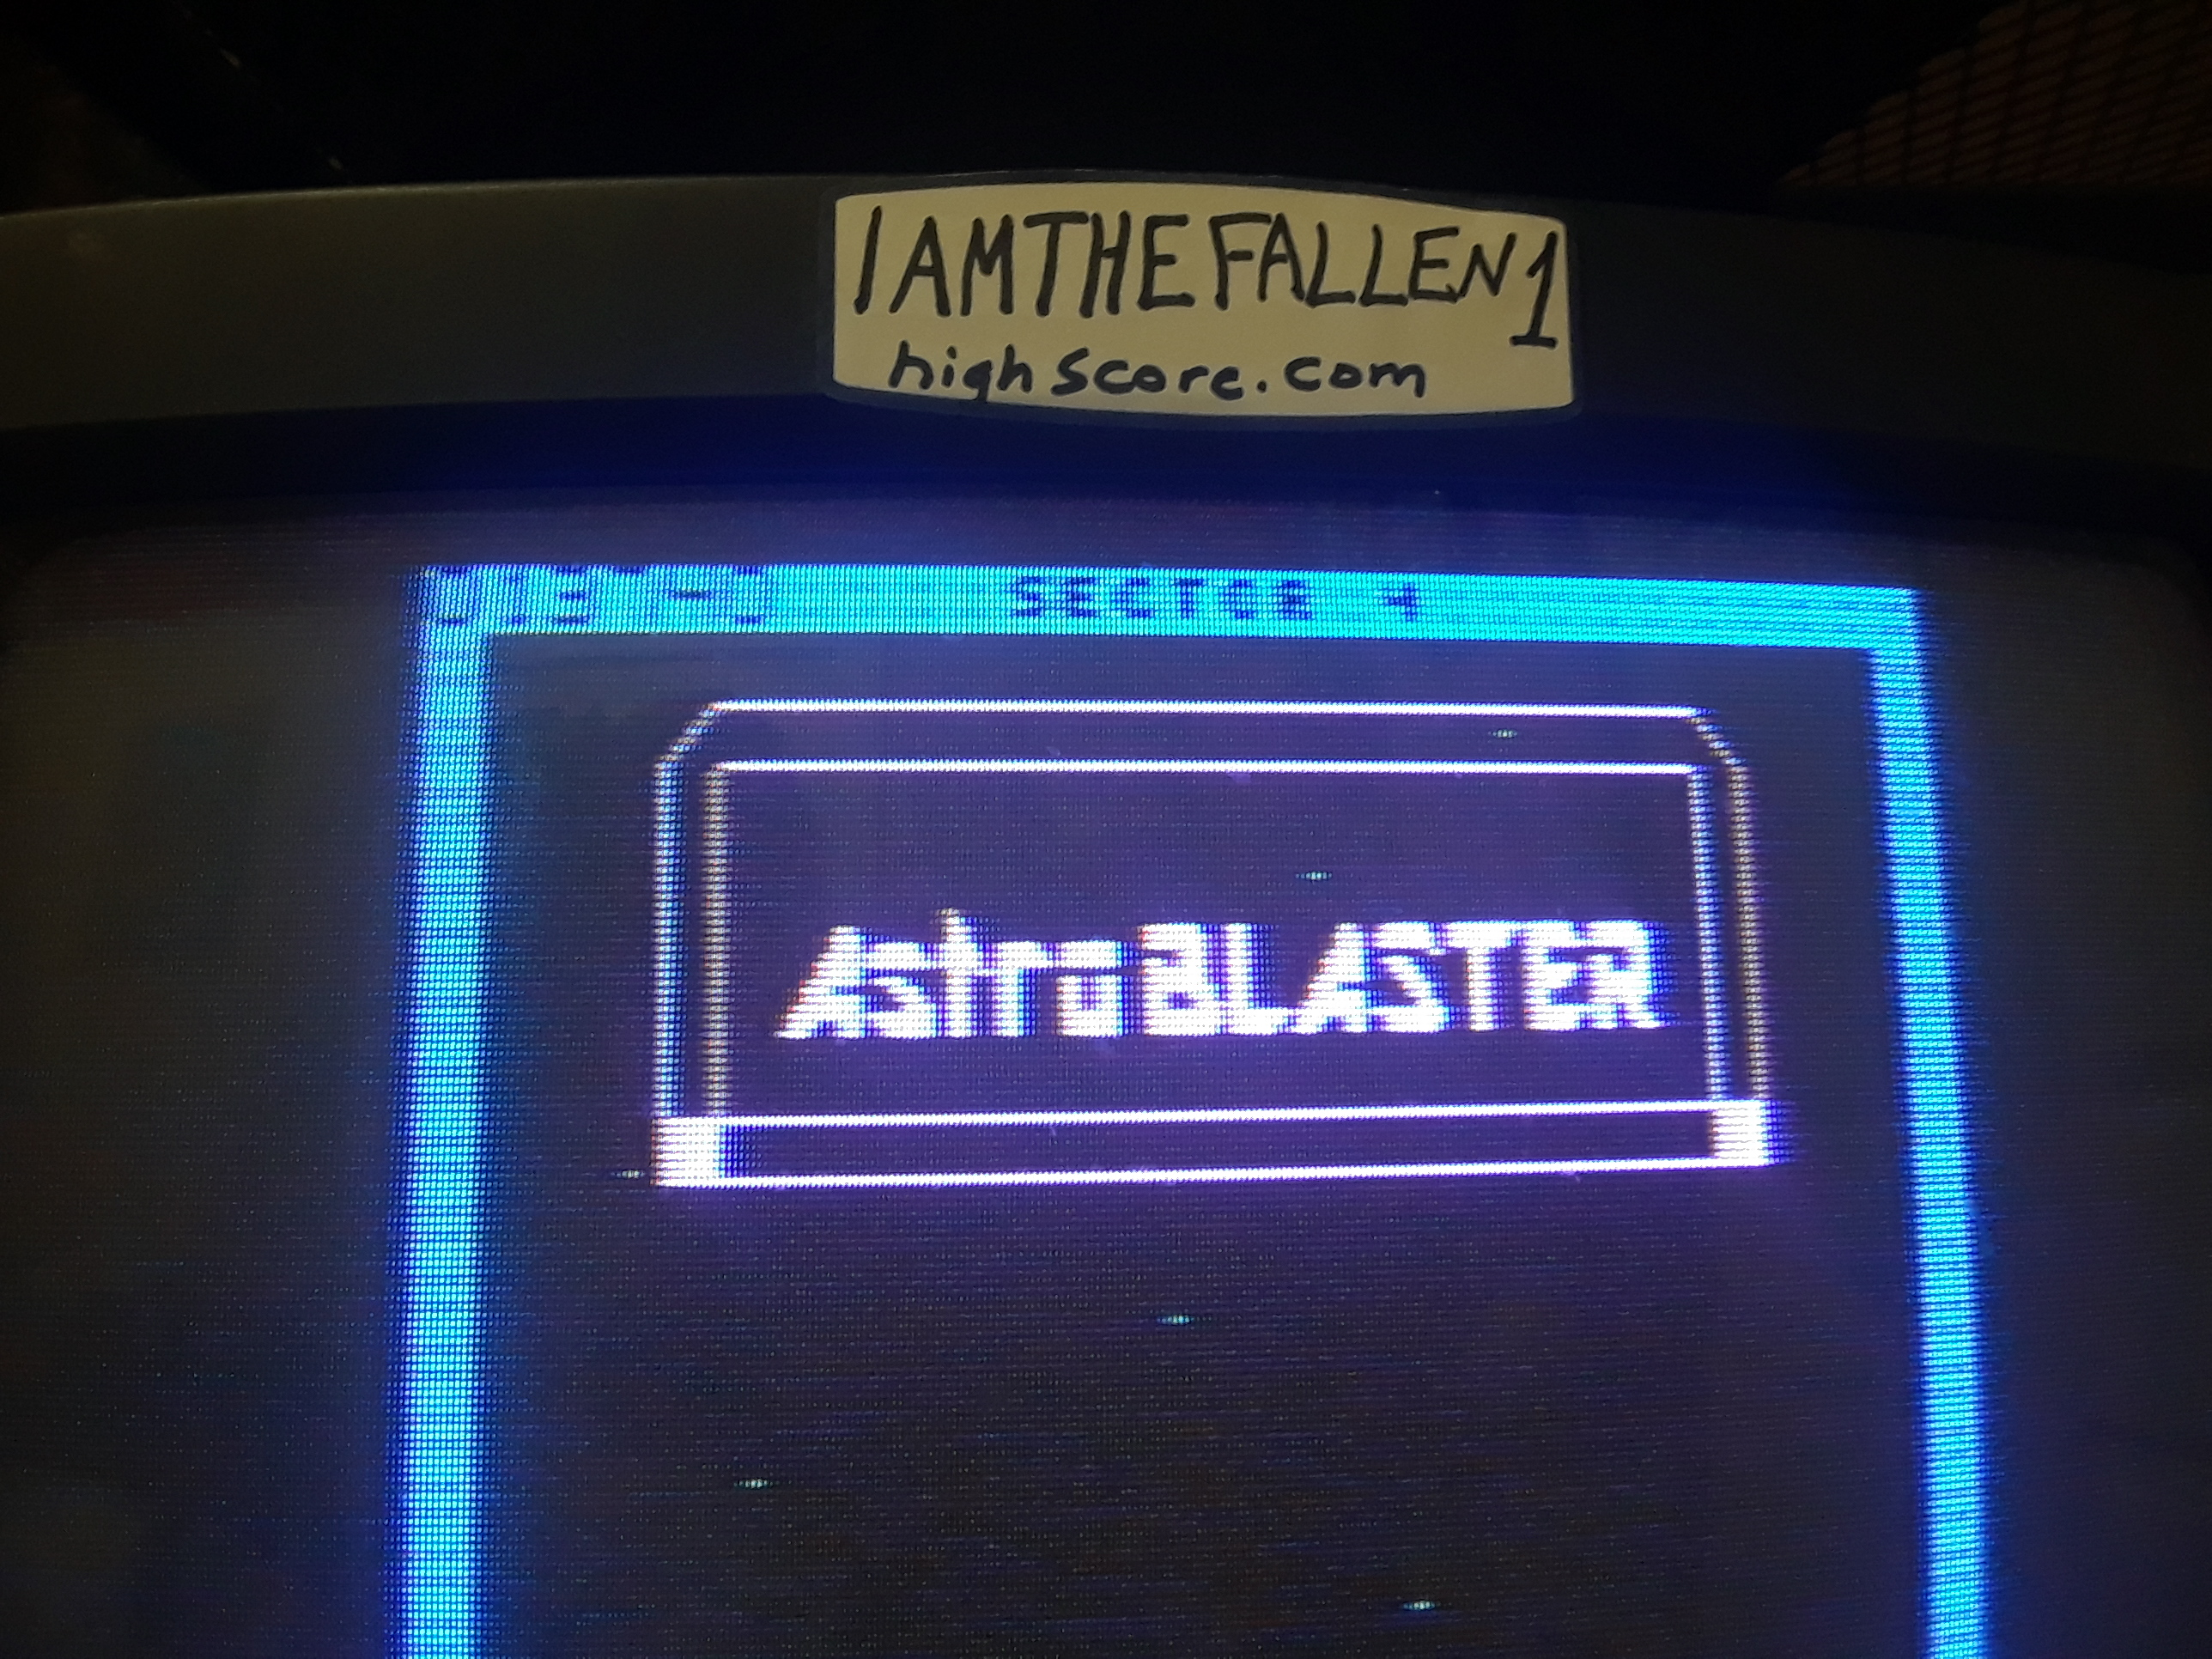 iamthefallen1: Astro Blaster [Easy/5 Lives] (Atari 7800) 13,740 points on 2019-01-31 19:48:49